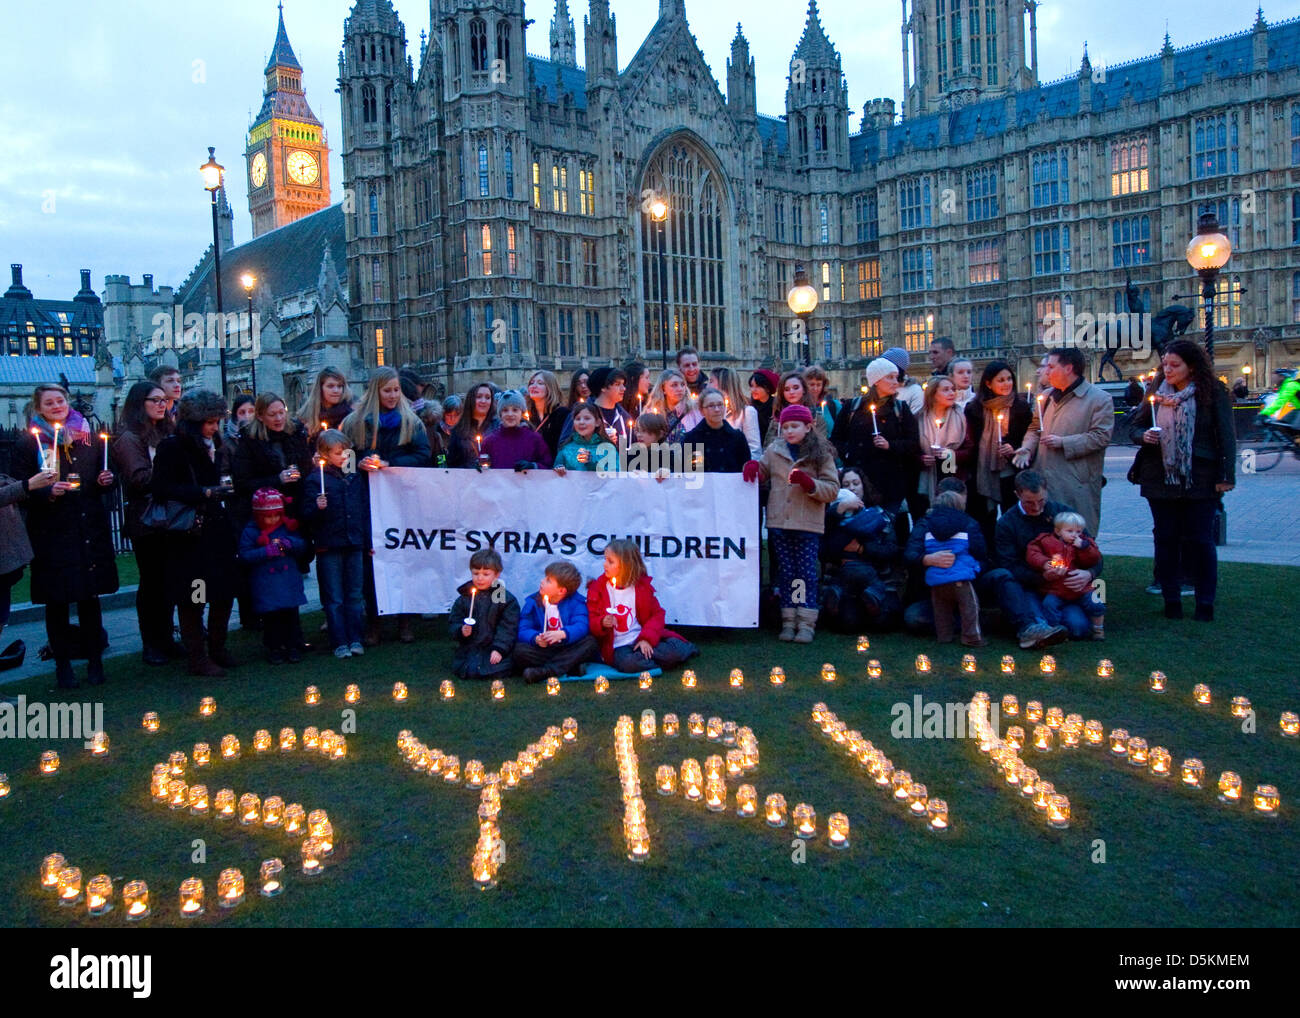 Candlelit Vigil outside Parliament to mark the 2nd anniversary of the war in Syria 14th March 2013 - Stock Image